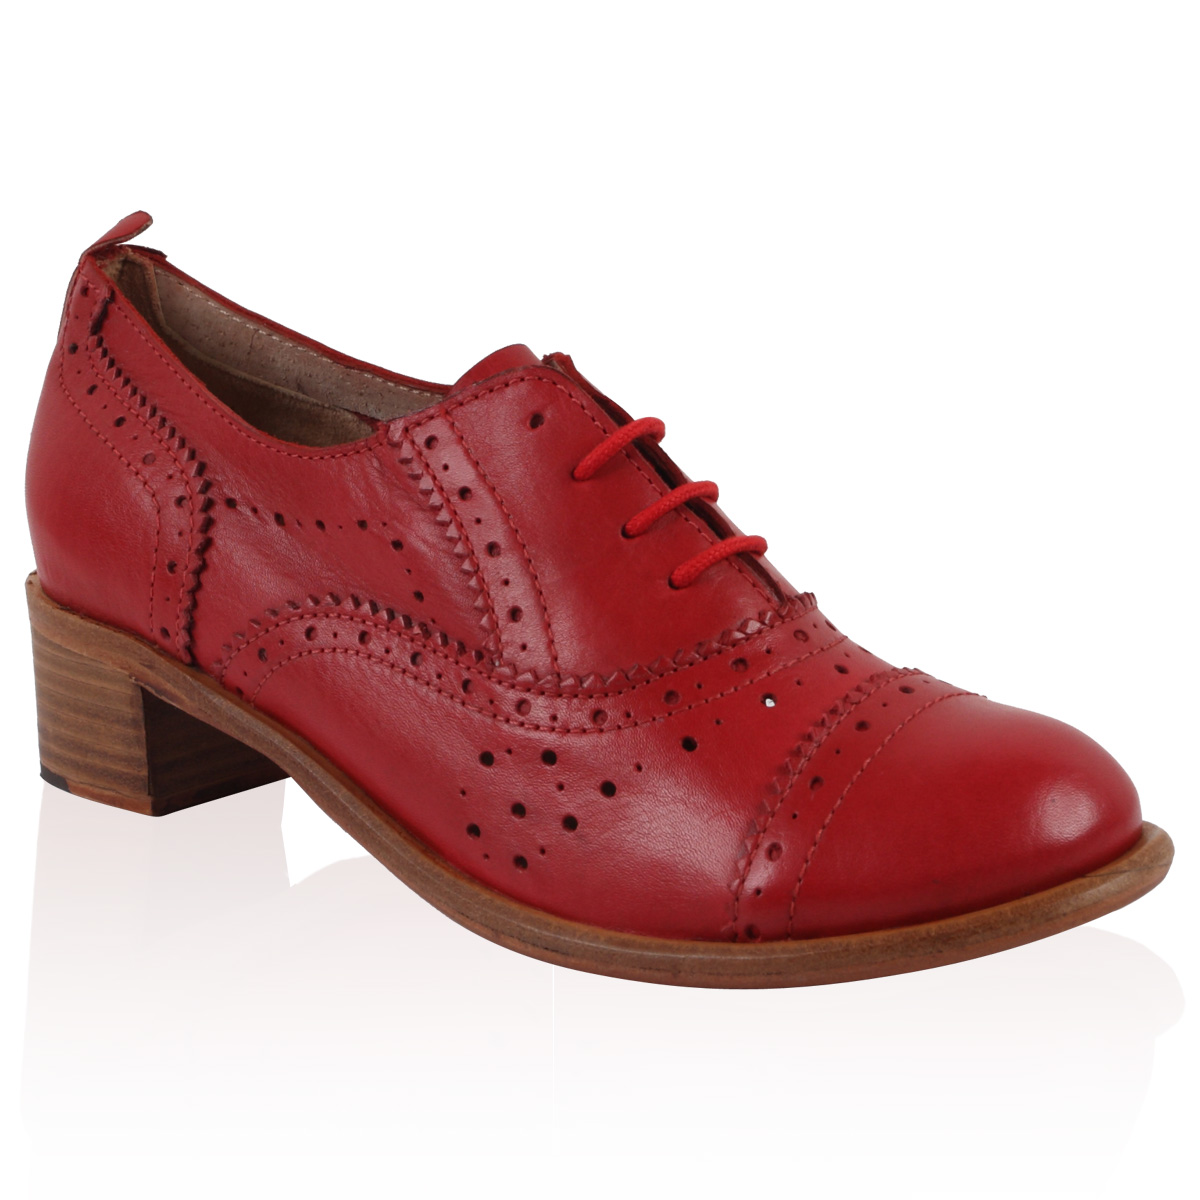 Qupid Brogue Tassel Smoking Loafers - Red. Online only! Smoking slippers get a rockstar update with a faux patent leather cap-toe that's perforated with wonderful wingtip style!